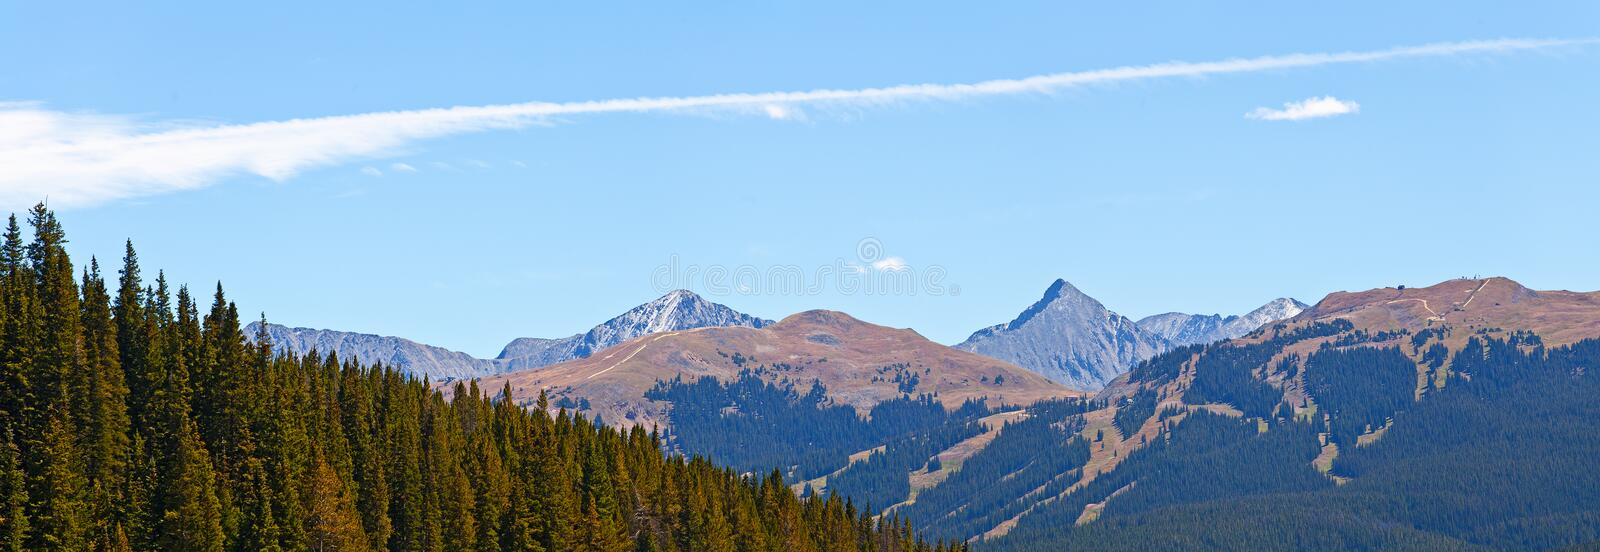 Landscape panorama of beautiful mountain and pine forest nature stock photography